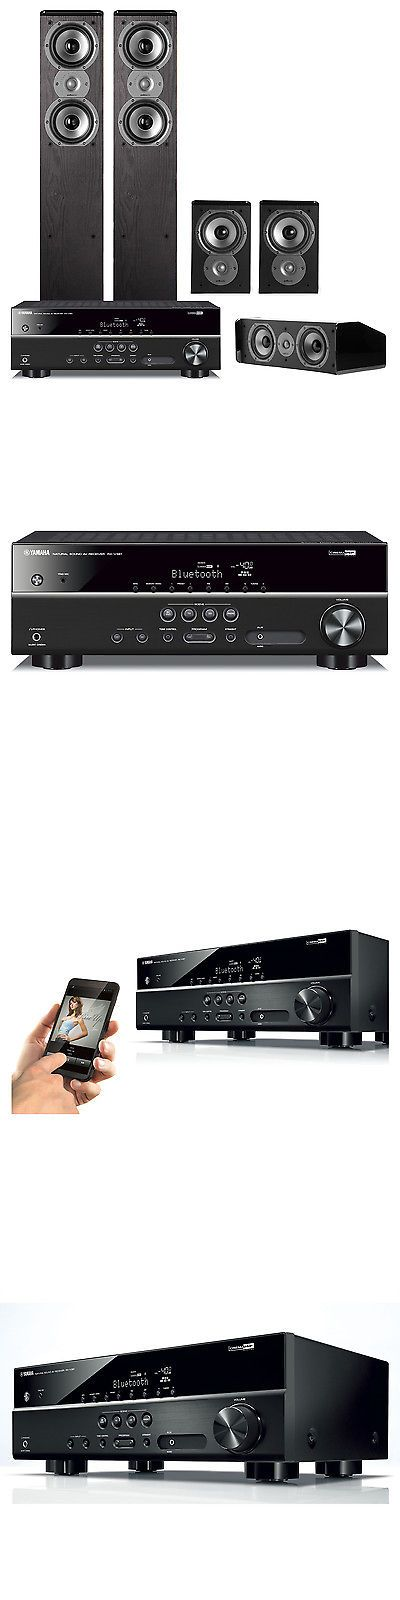 Home Theater Systems: Yamaha Rxv381 5.1-Channel Receiver W/ Polk 5.0 Home Theater Speaker Bundle BUY IT NOW ONLY: $789.0